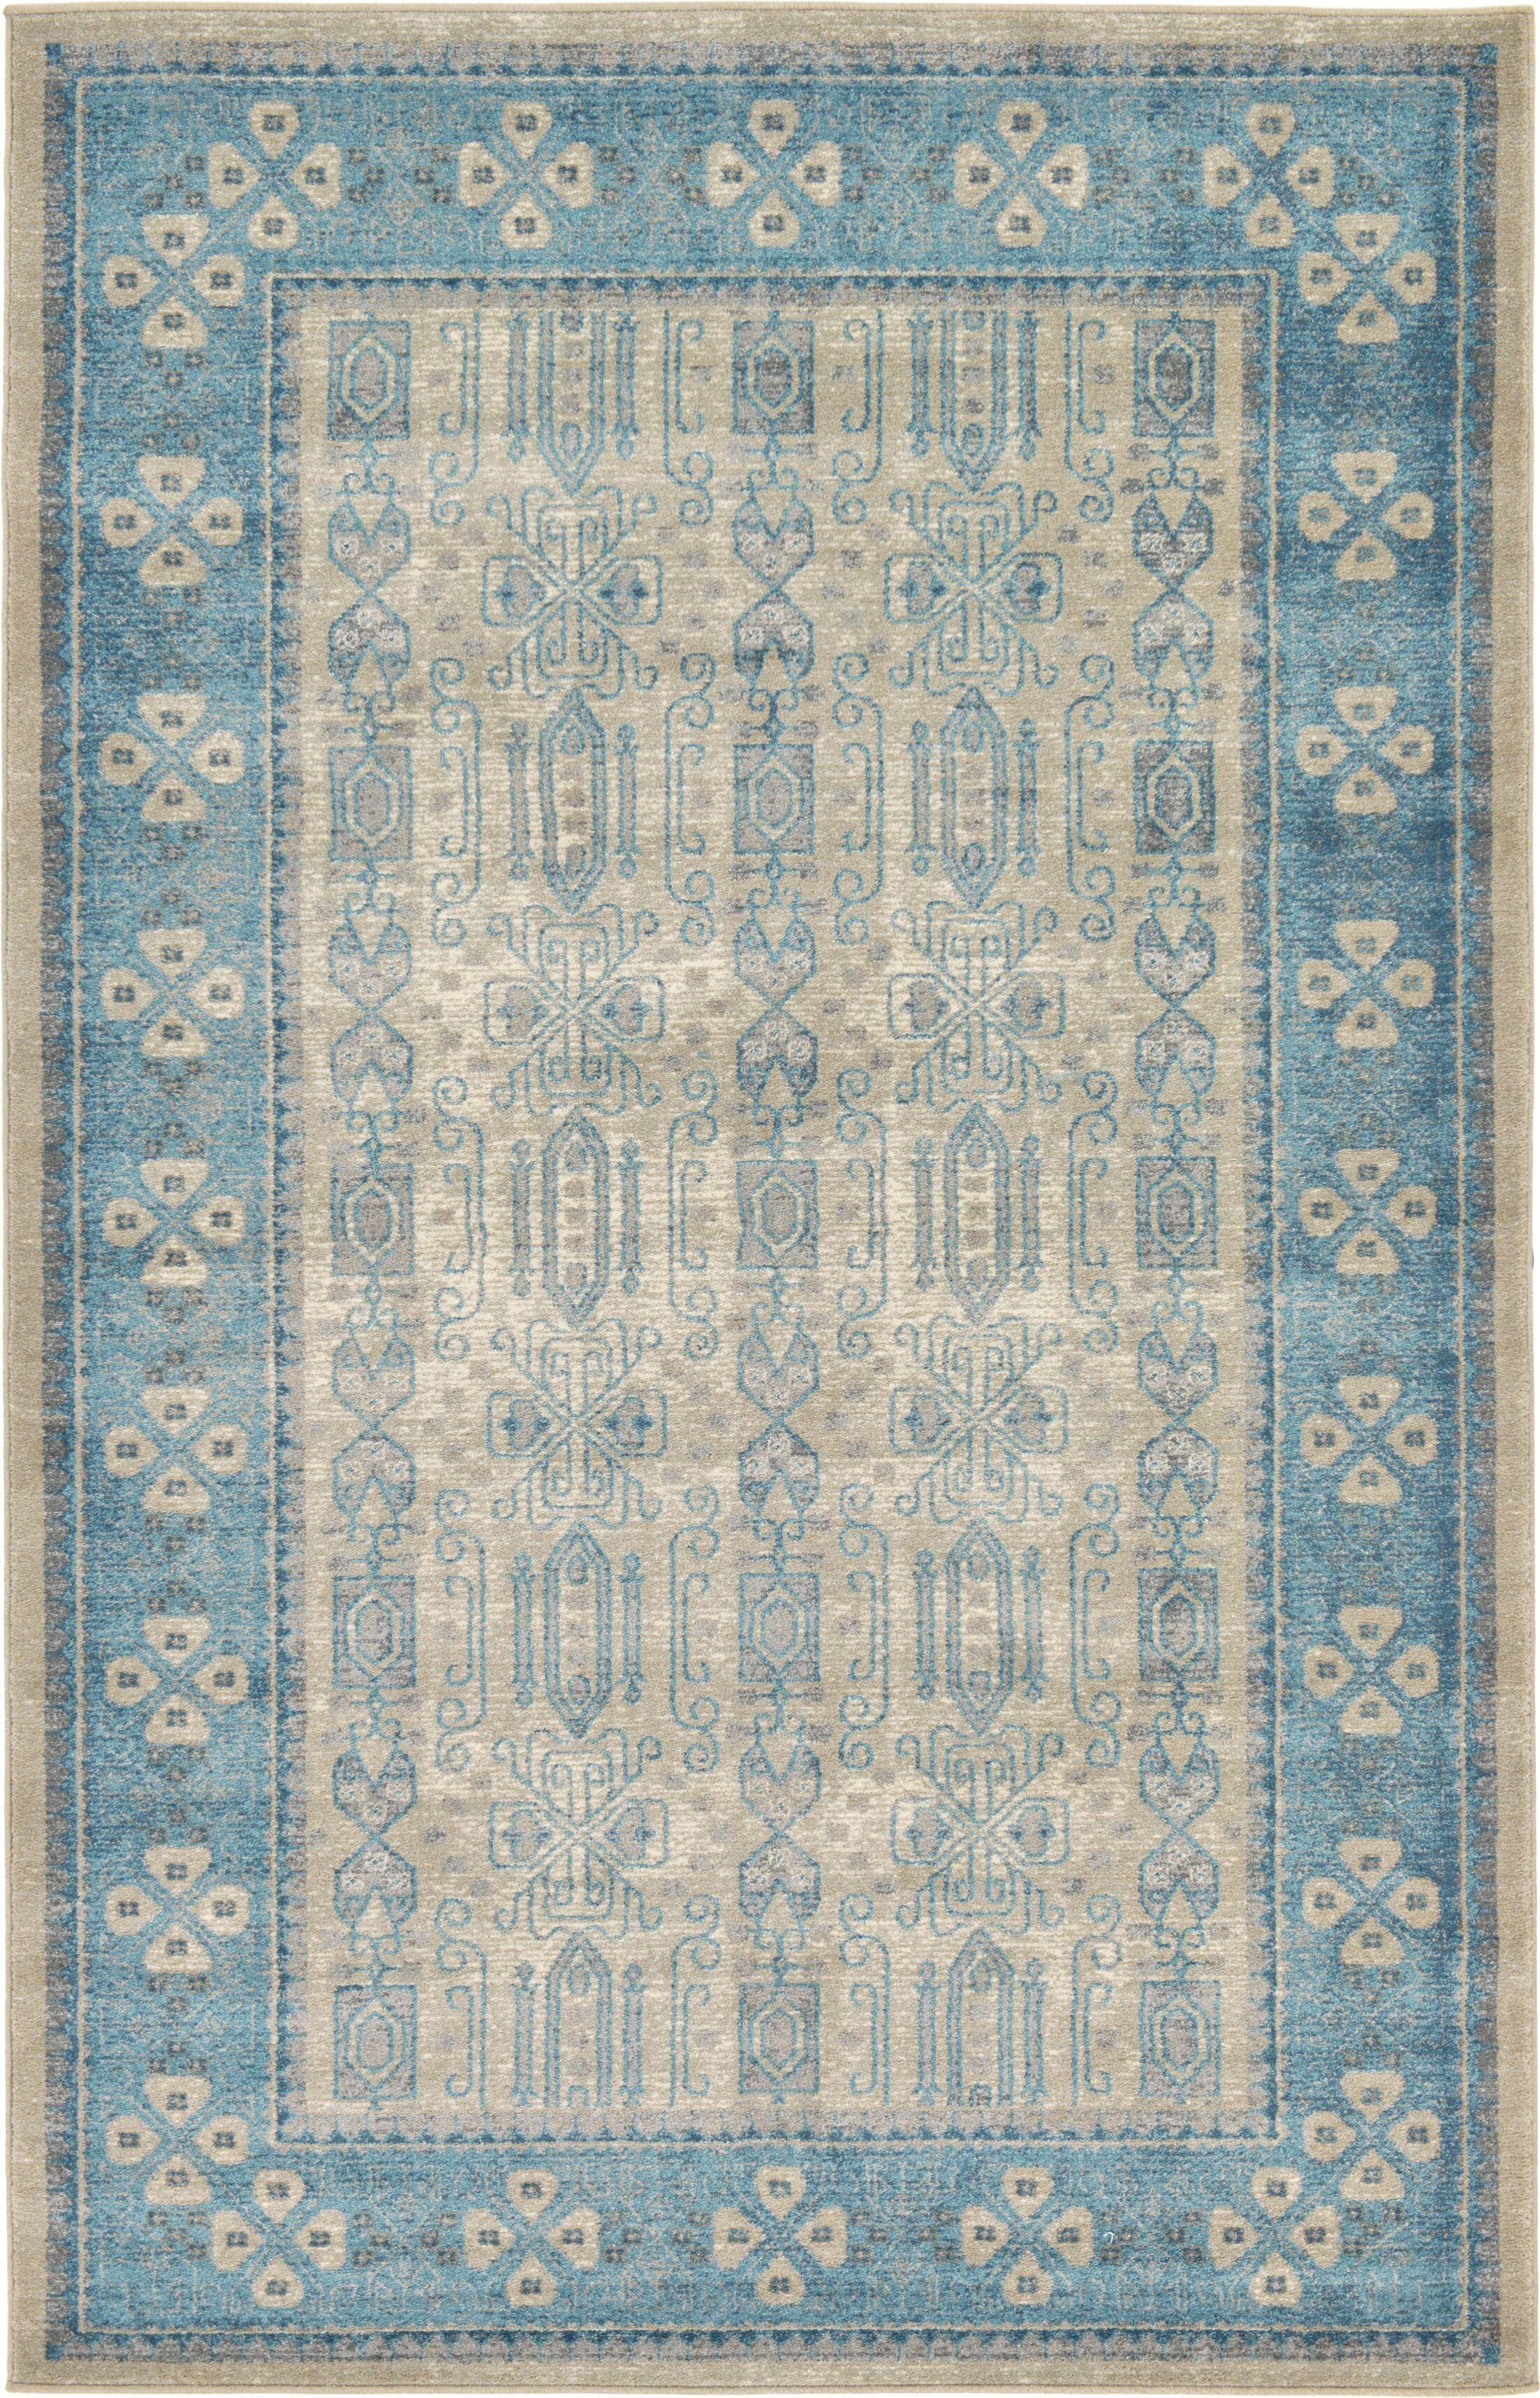 Brierfield Beige/Blue Area Rug Rug Size: Rectangle 5' x 8'